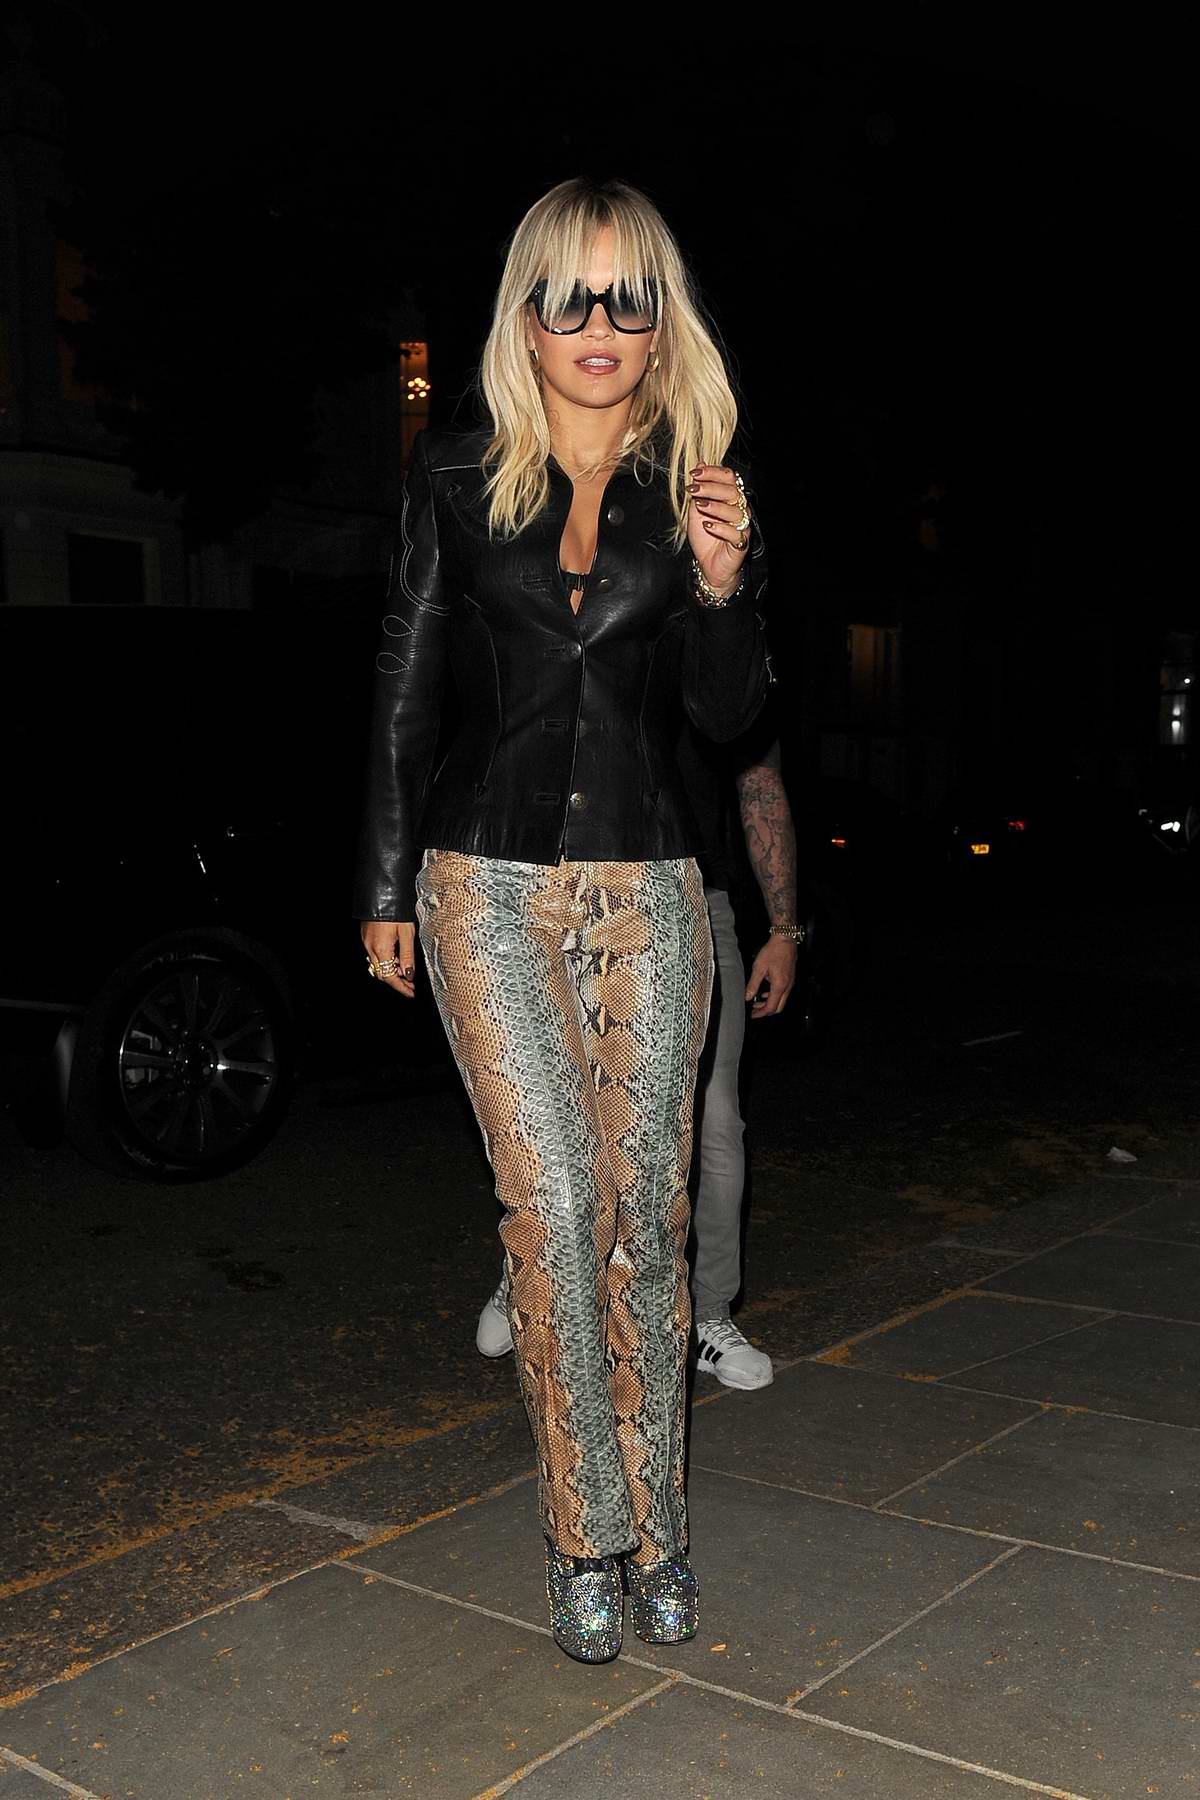 Rita Ora rocks black leather jacket and snakeskin pants while attending Amazon's Prime Day party in London, UK